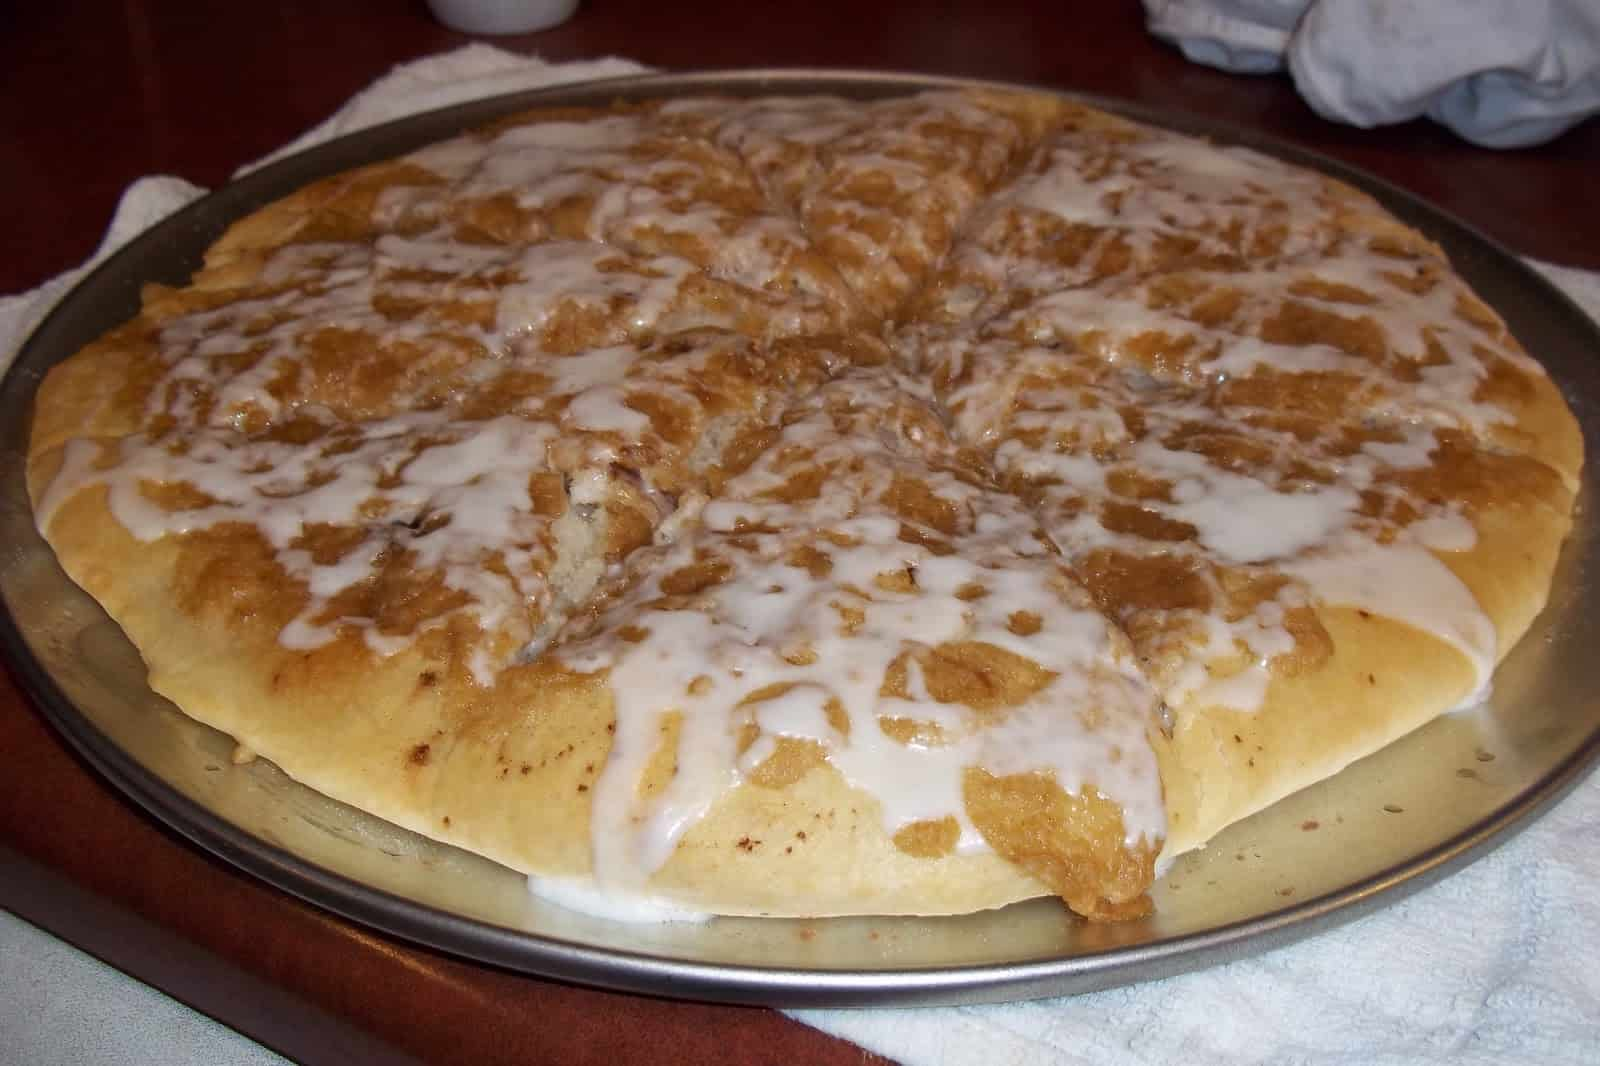 Glazed vanilla and cinnamon dessert pizza